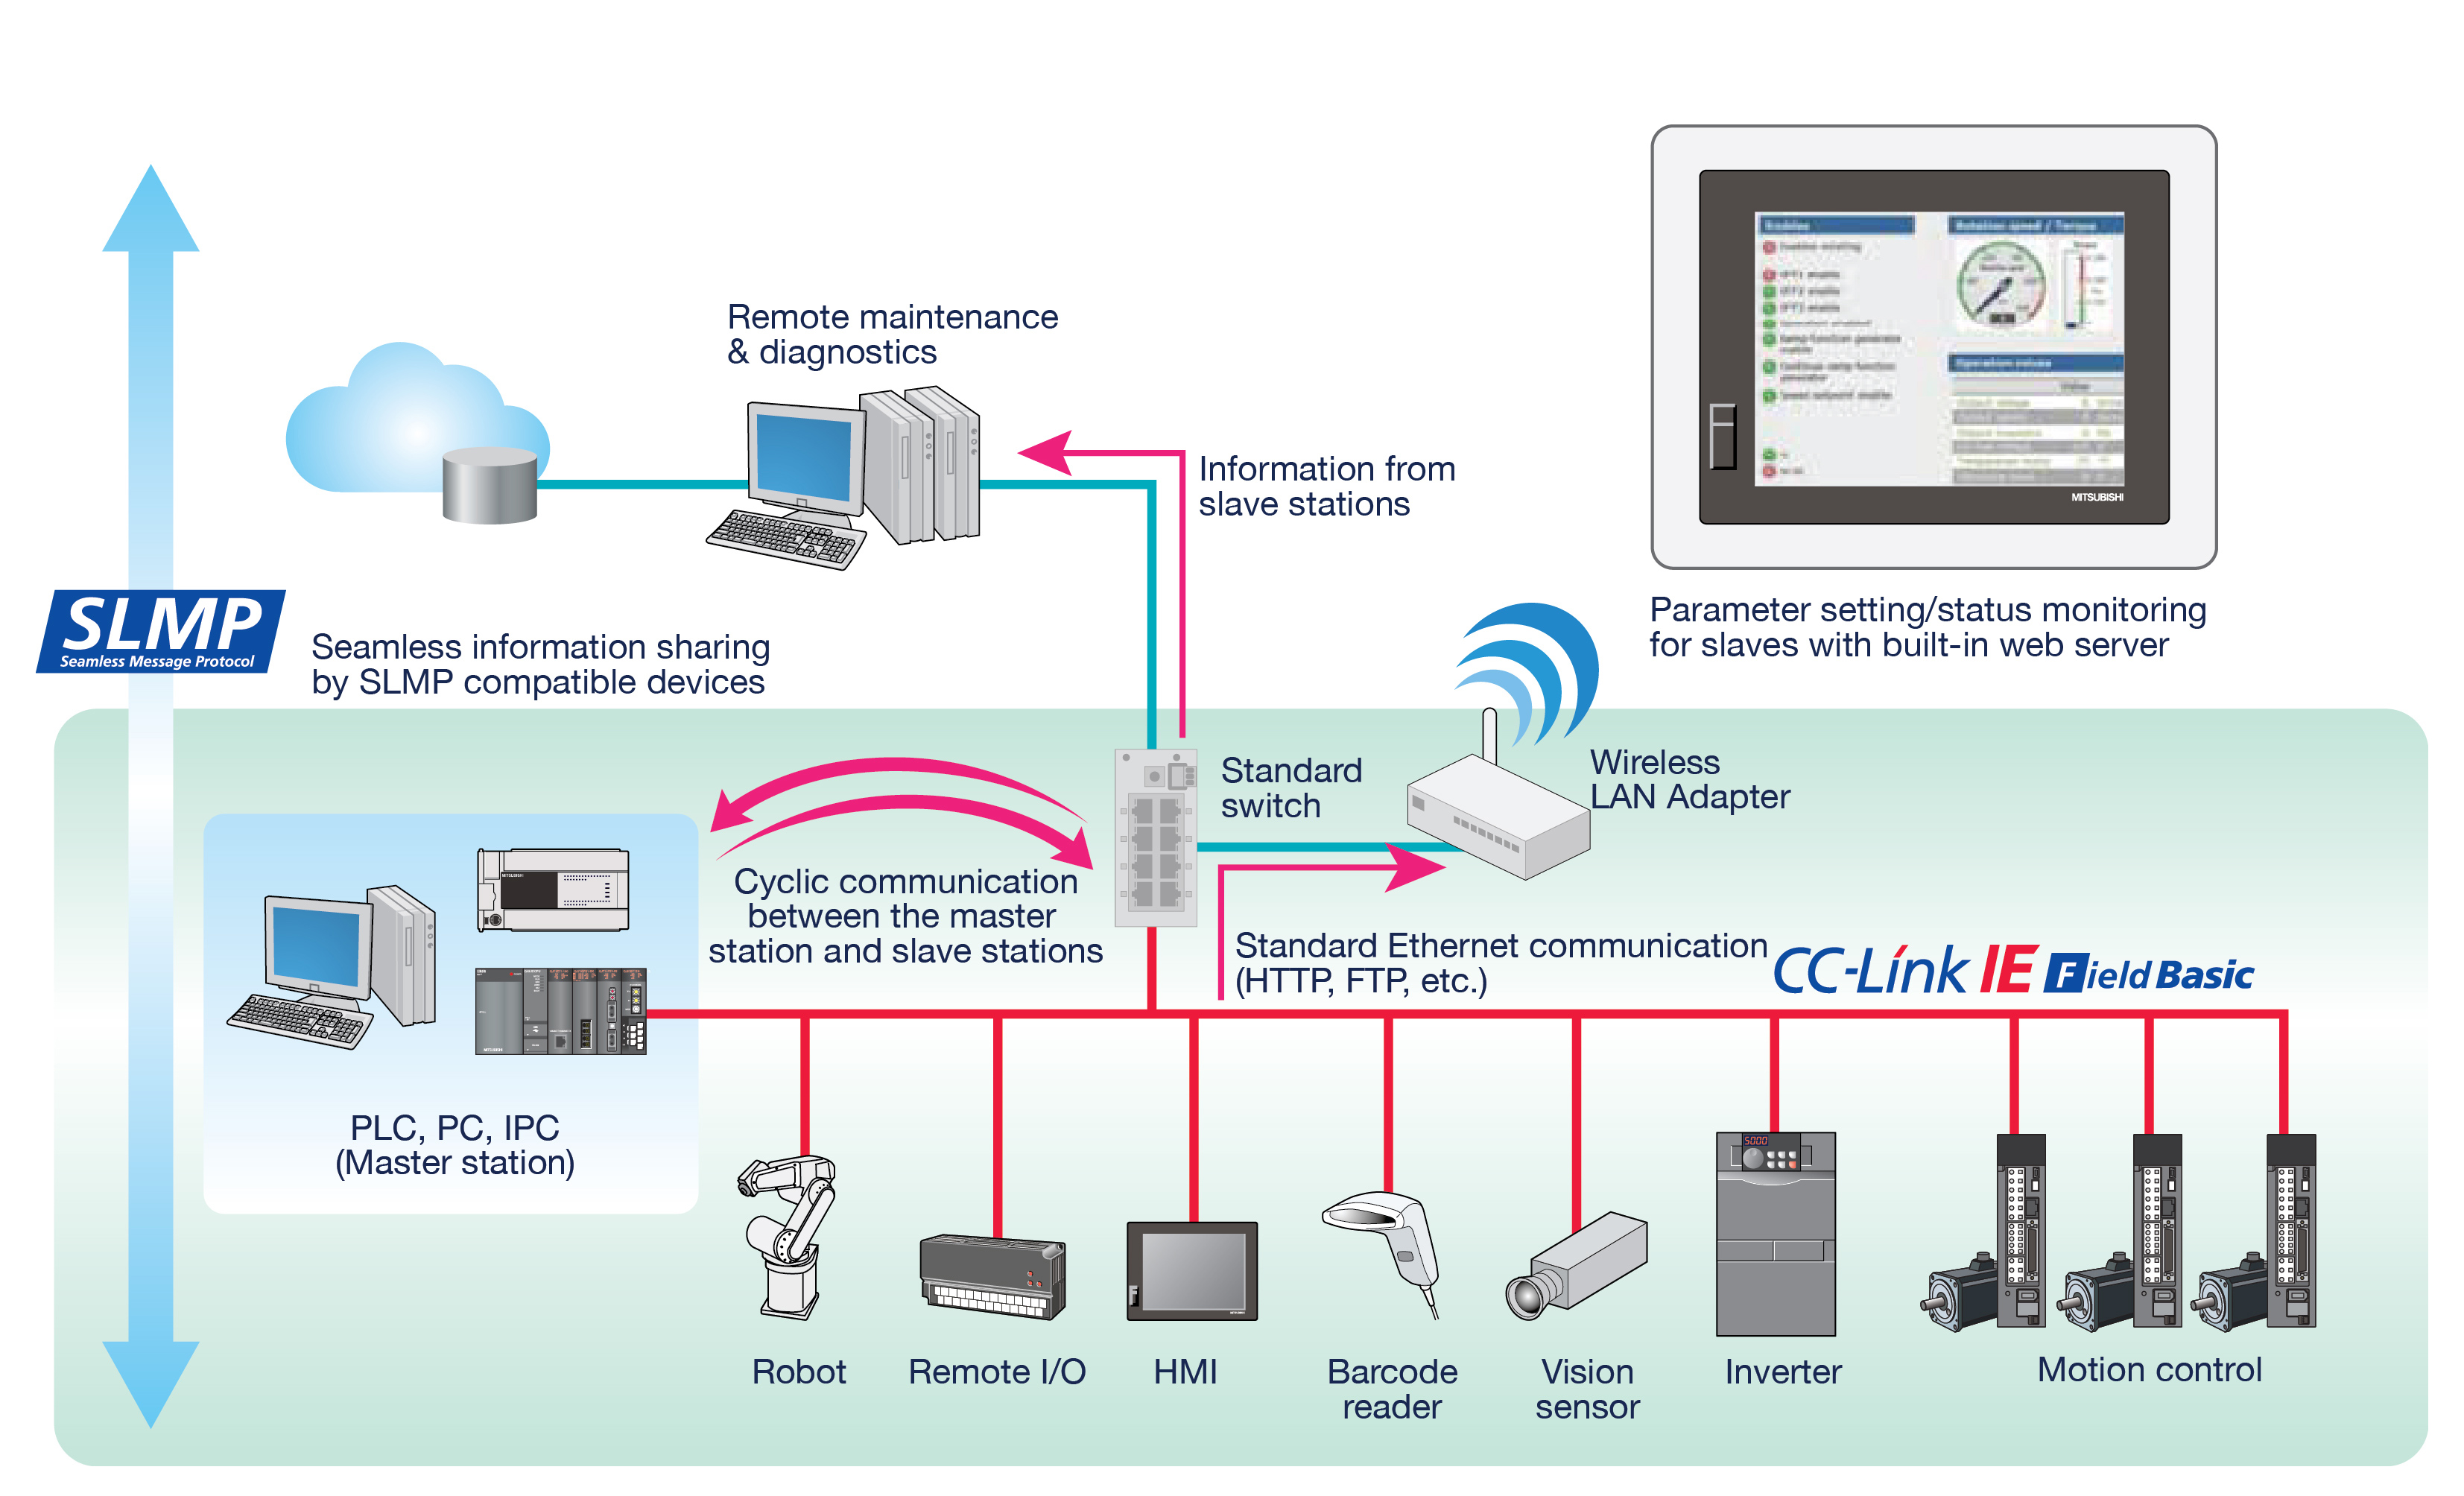 CC-Link IE now compatible with 100Mbit Ethernet devices